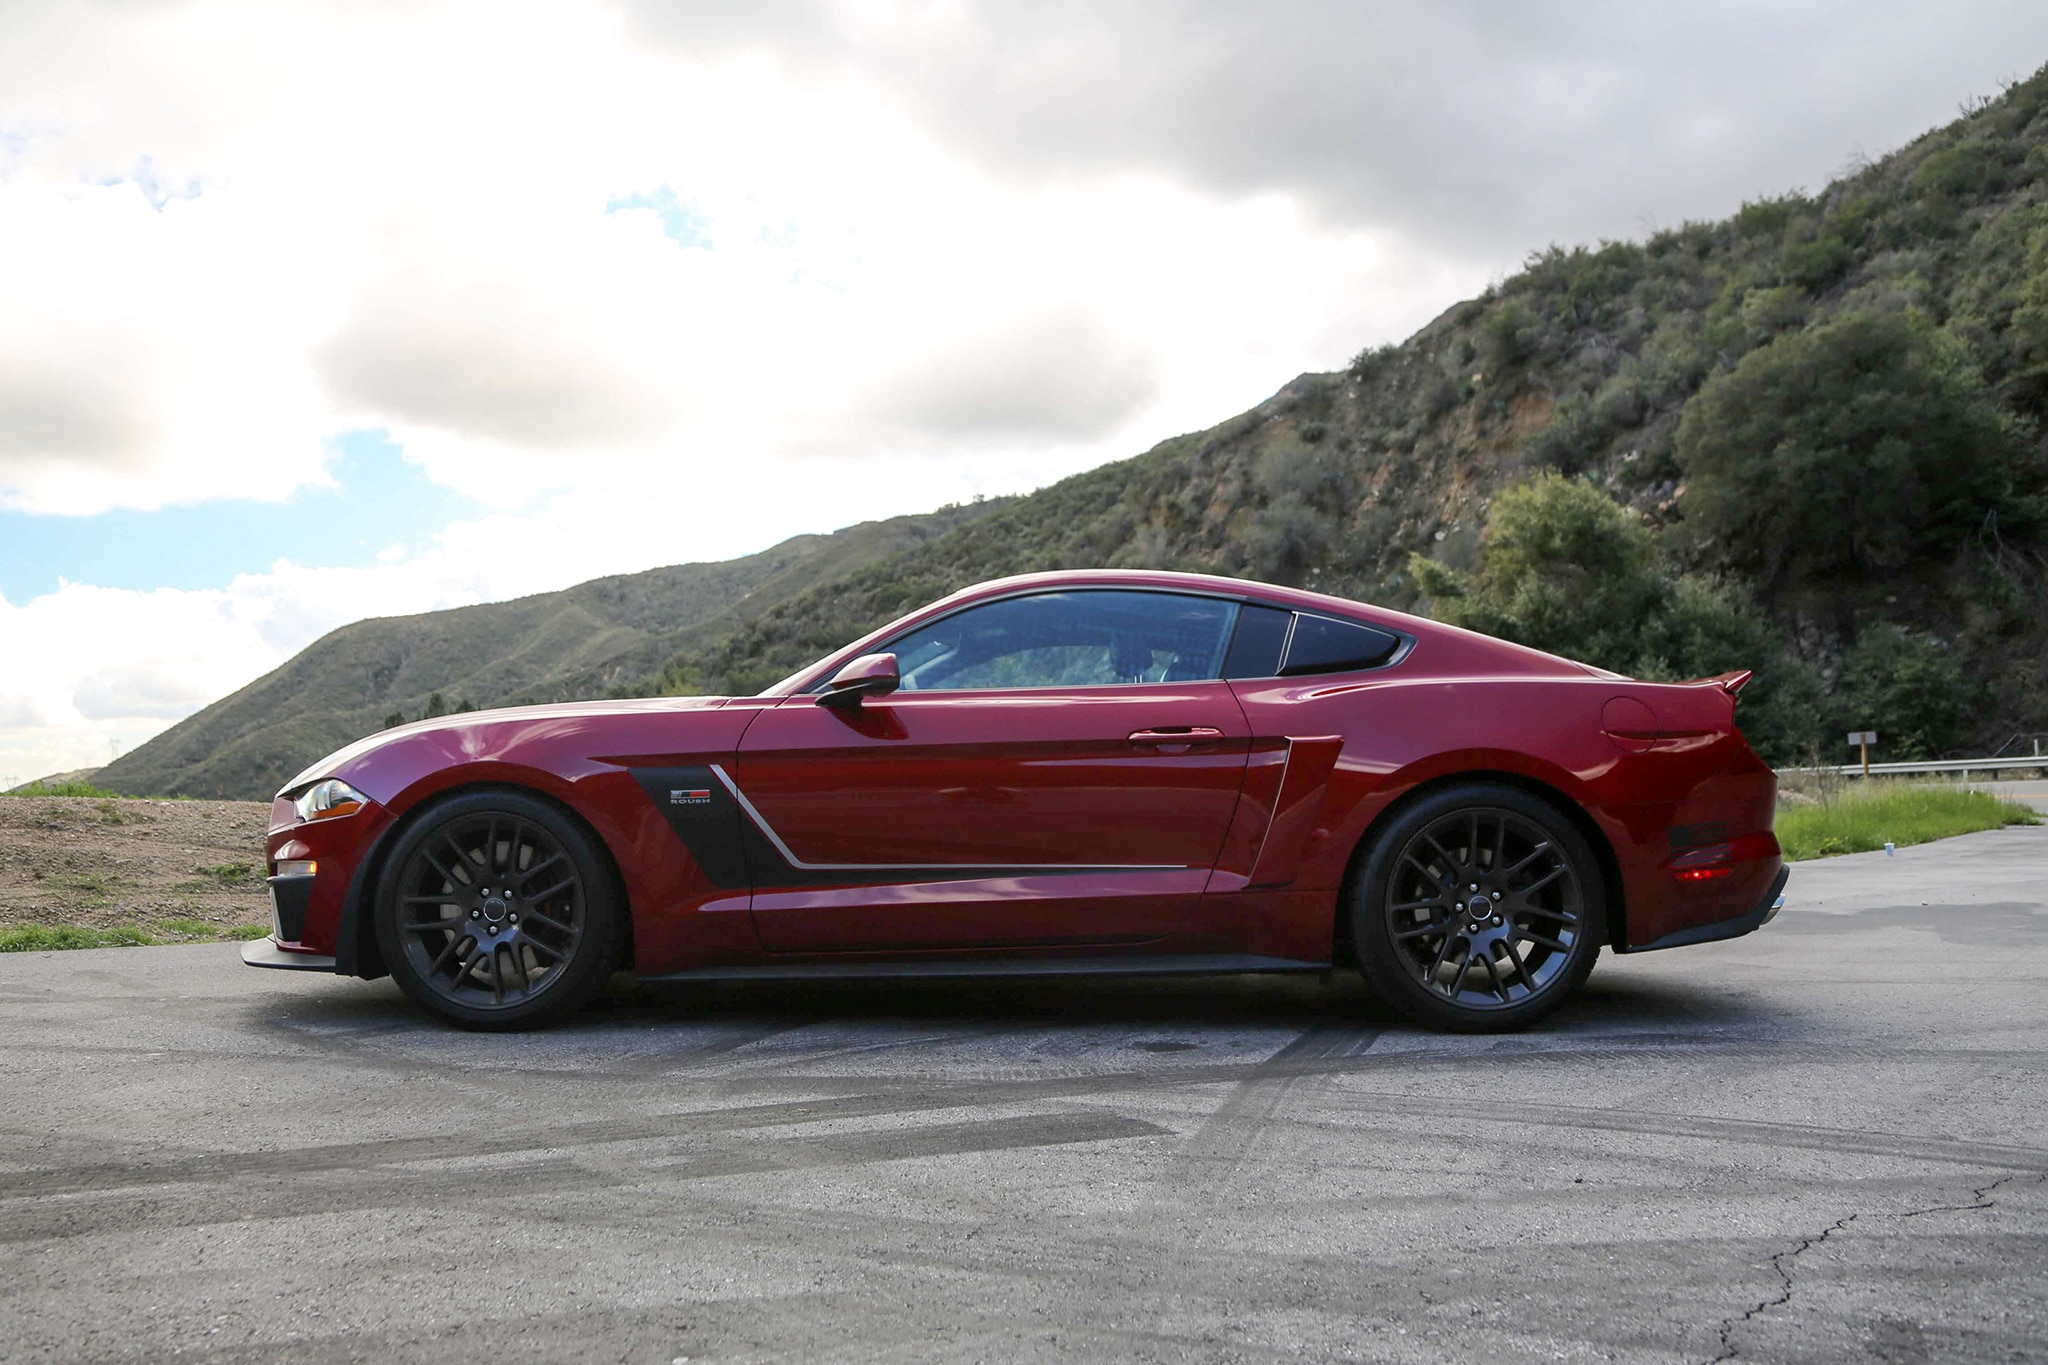 2019 Ford Mustang Roush Stage 3 Review: Stacked with Power